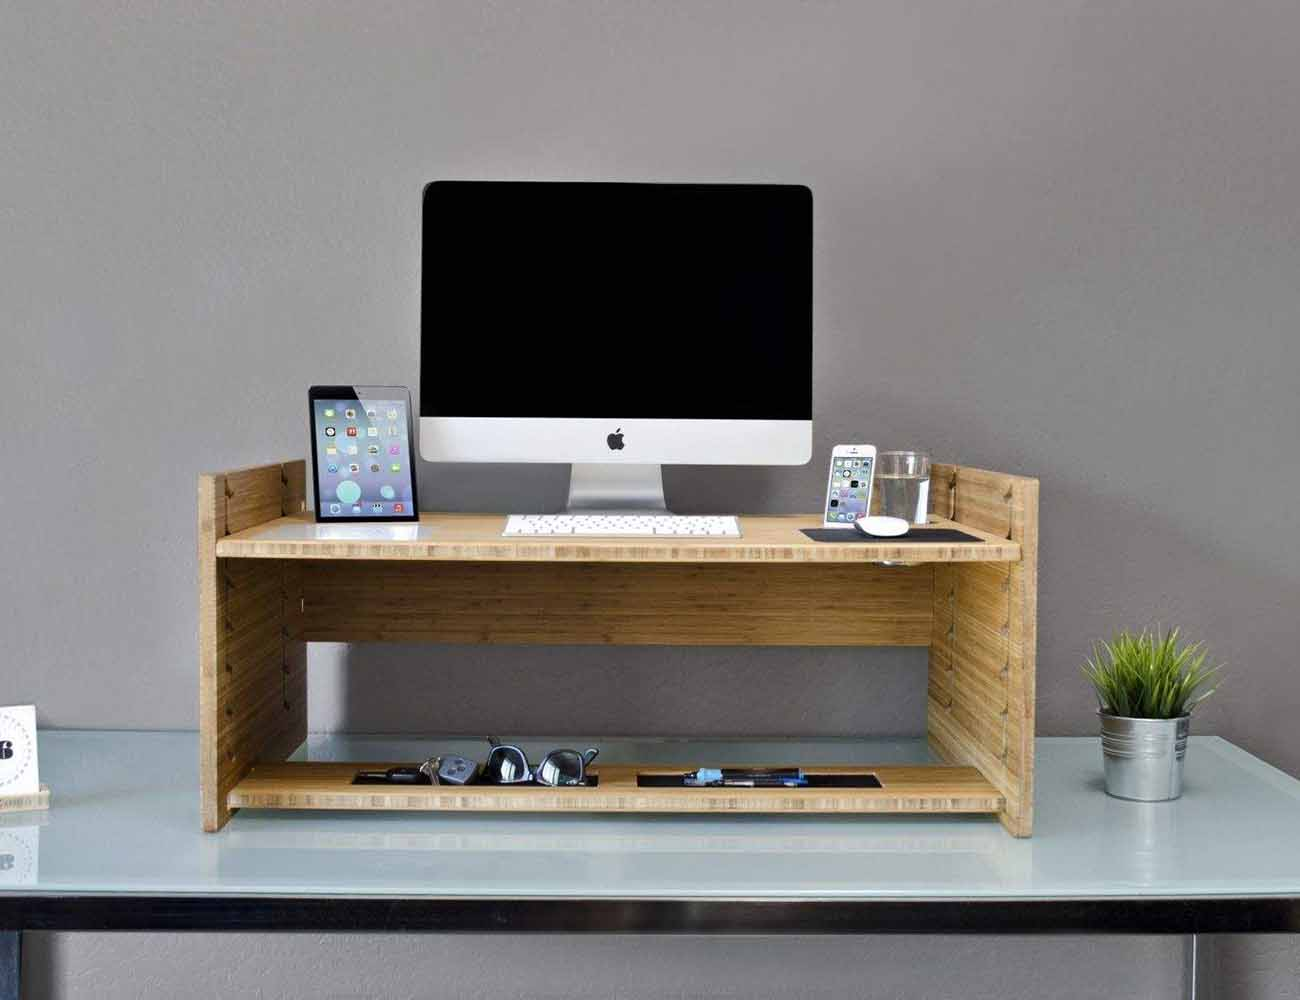 LIFT Adjustable Smart Desk by iSkelter